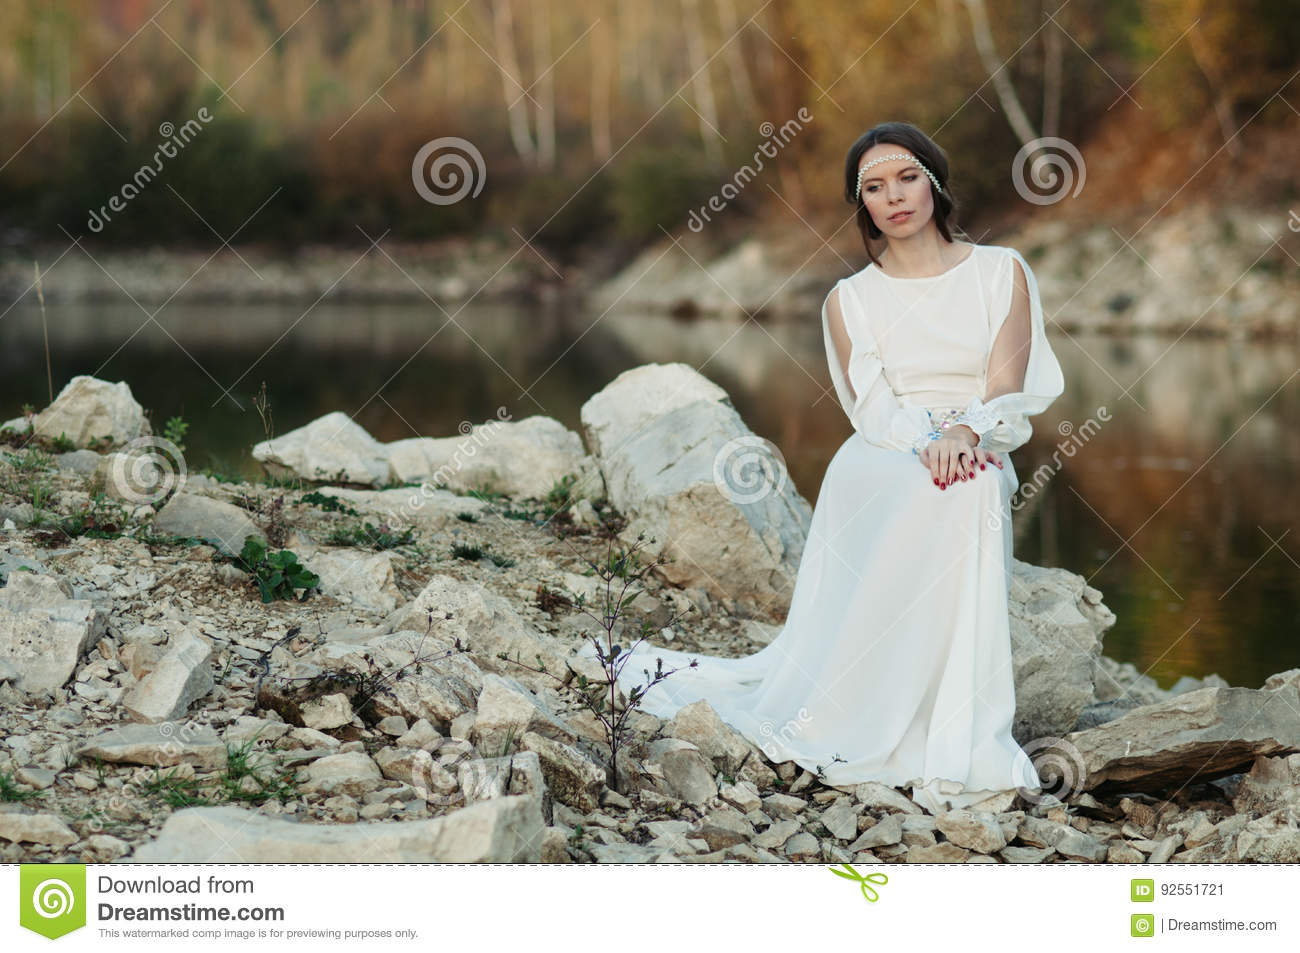 White dress by the shore - A Girl In A White Dress On The Shore Of A Pond